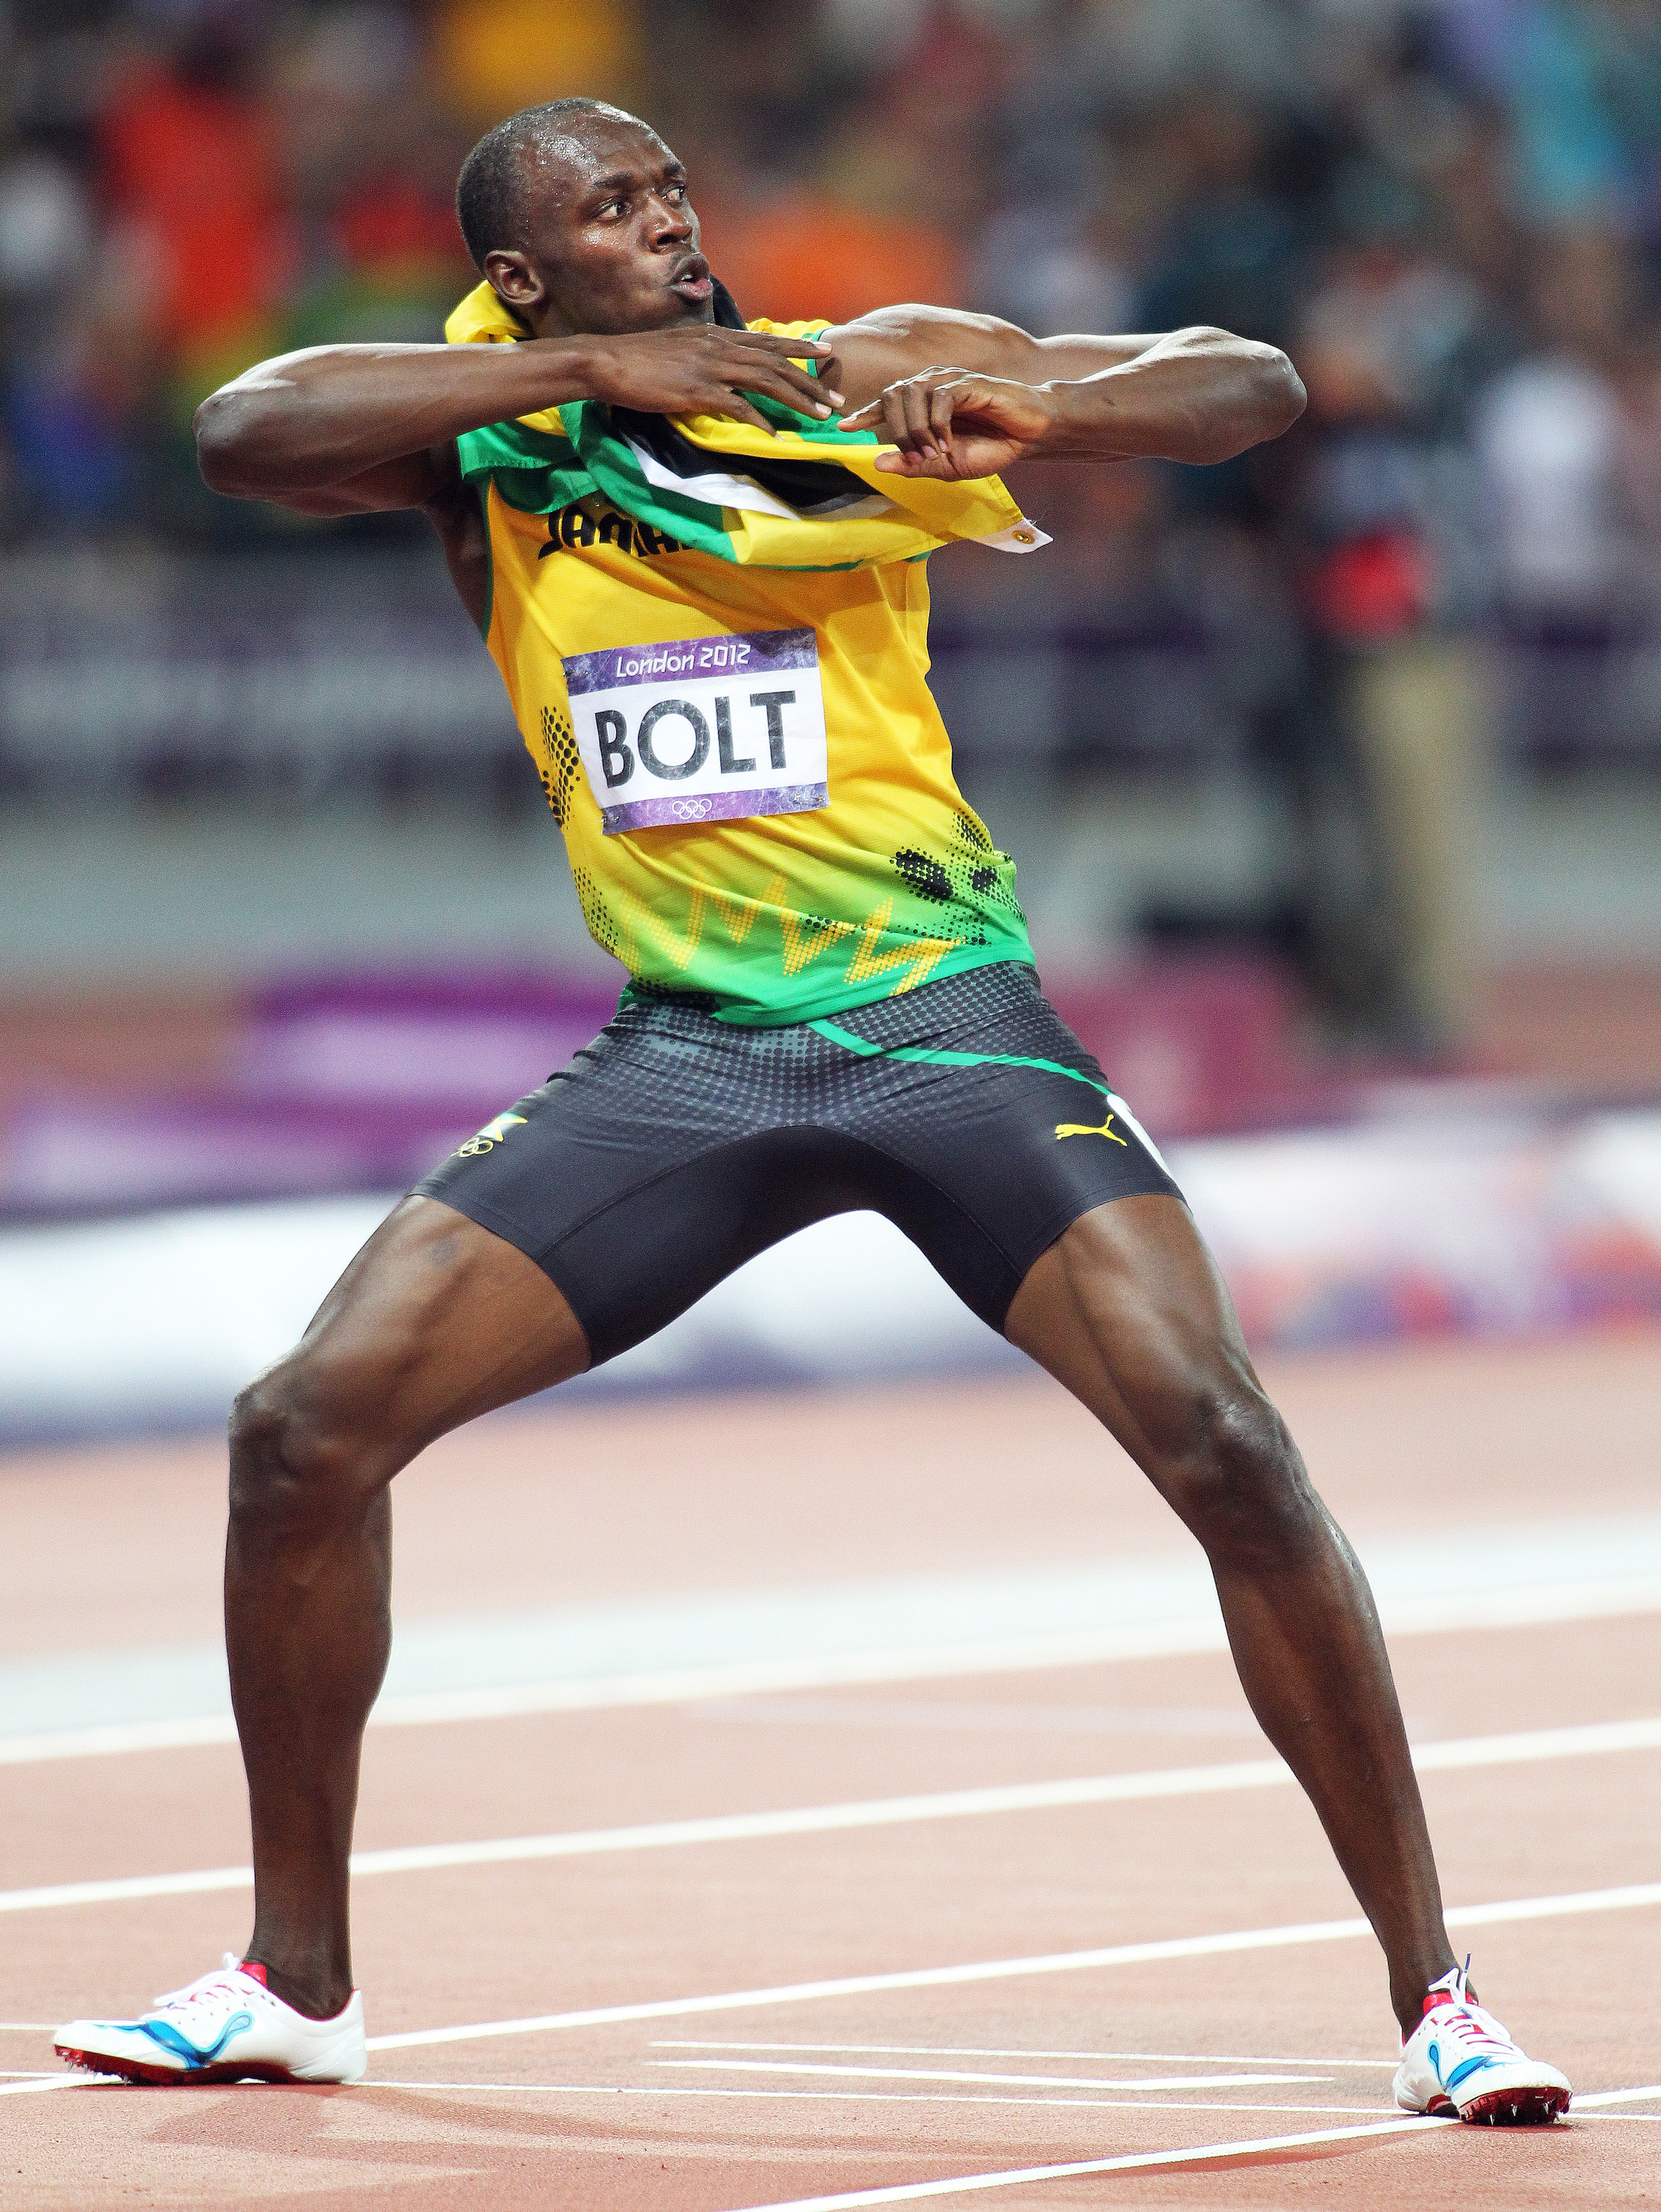 Aug 9, 2012; London, United Kingdom; Usain Bolt (JAM) celebrates after winning the mens 200m in 19.32 during the London 2012 Olympic Games at Olympic Stadium. Mandatory Credit: Kirby Lee-USA TODAY Sports